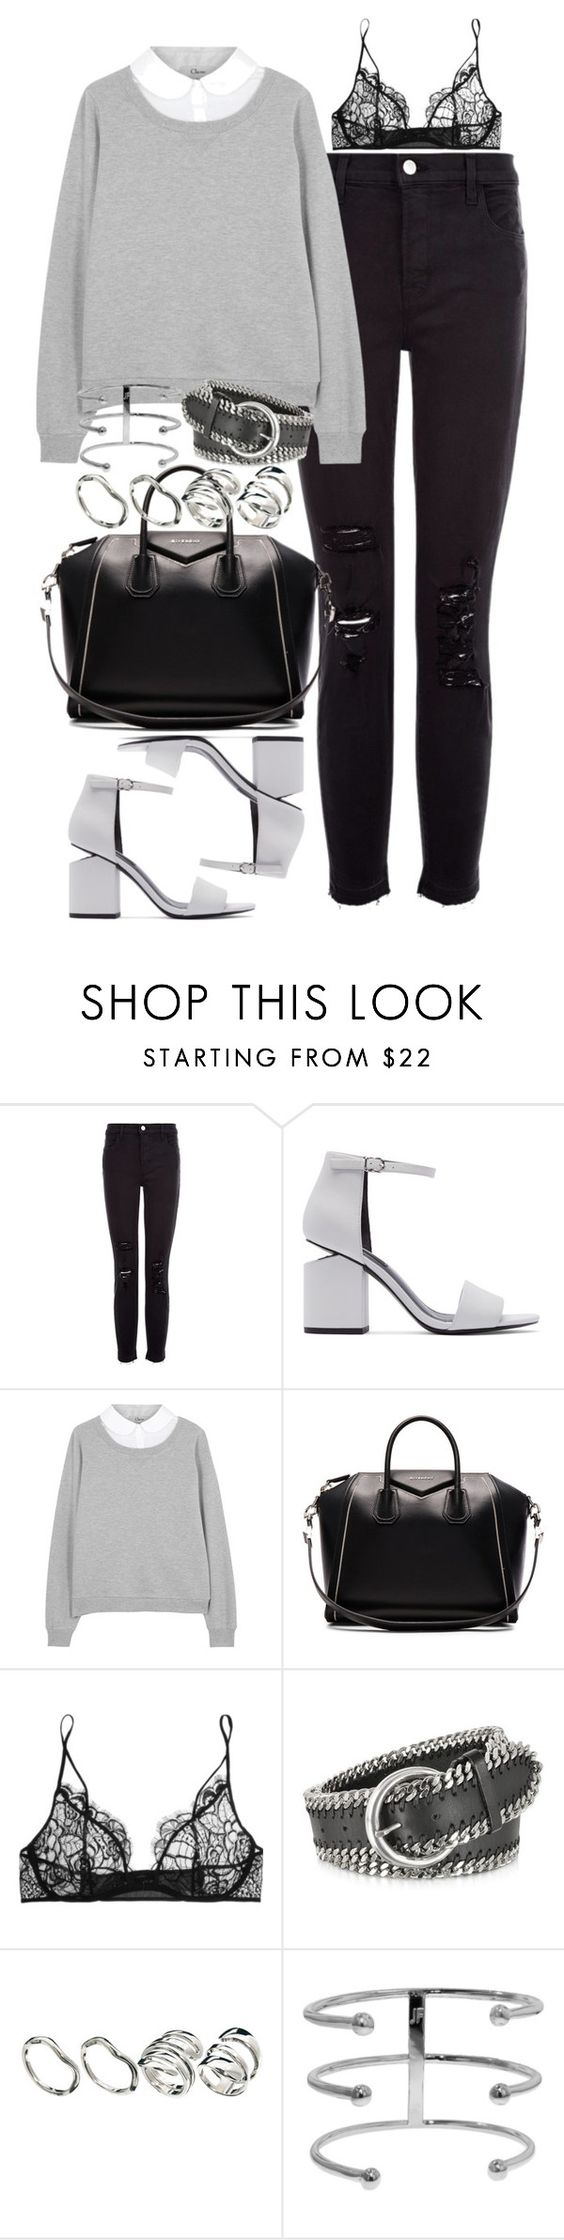 """Untitled #1975"" by sarah-ihab ❤ liked on Polyvore featuring J Brand, Alexander Wang, Clu, Givenchy, Kiki de Montparnasse, Forzieri, ASOS and Jennifer Fisher"